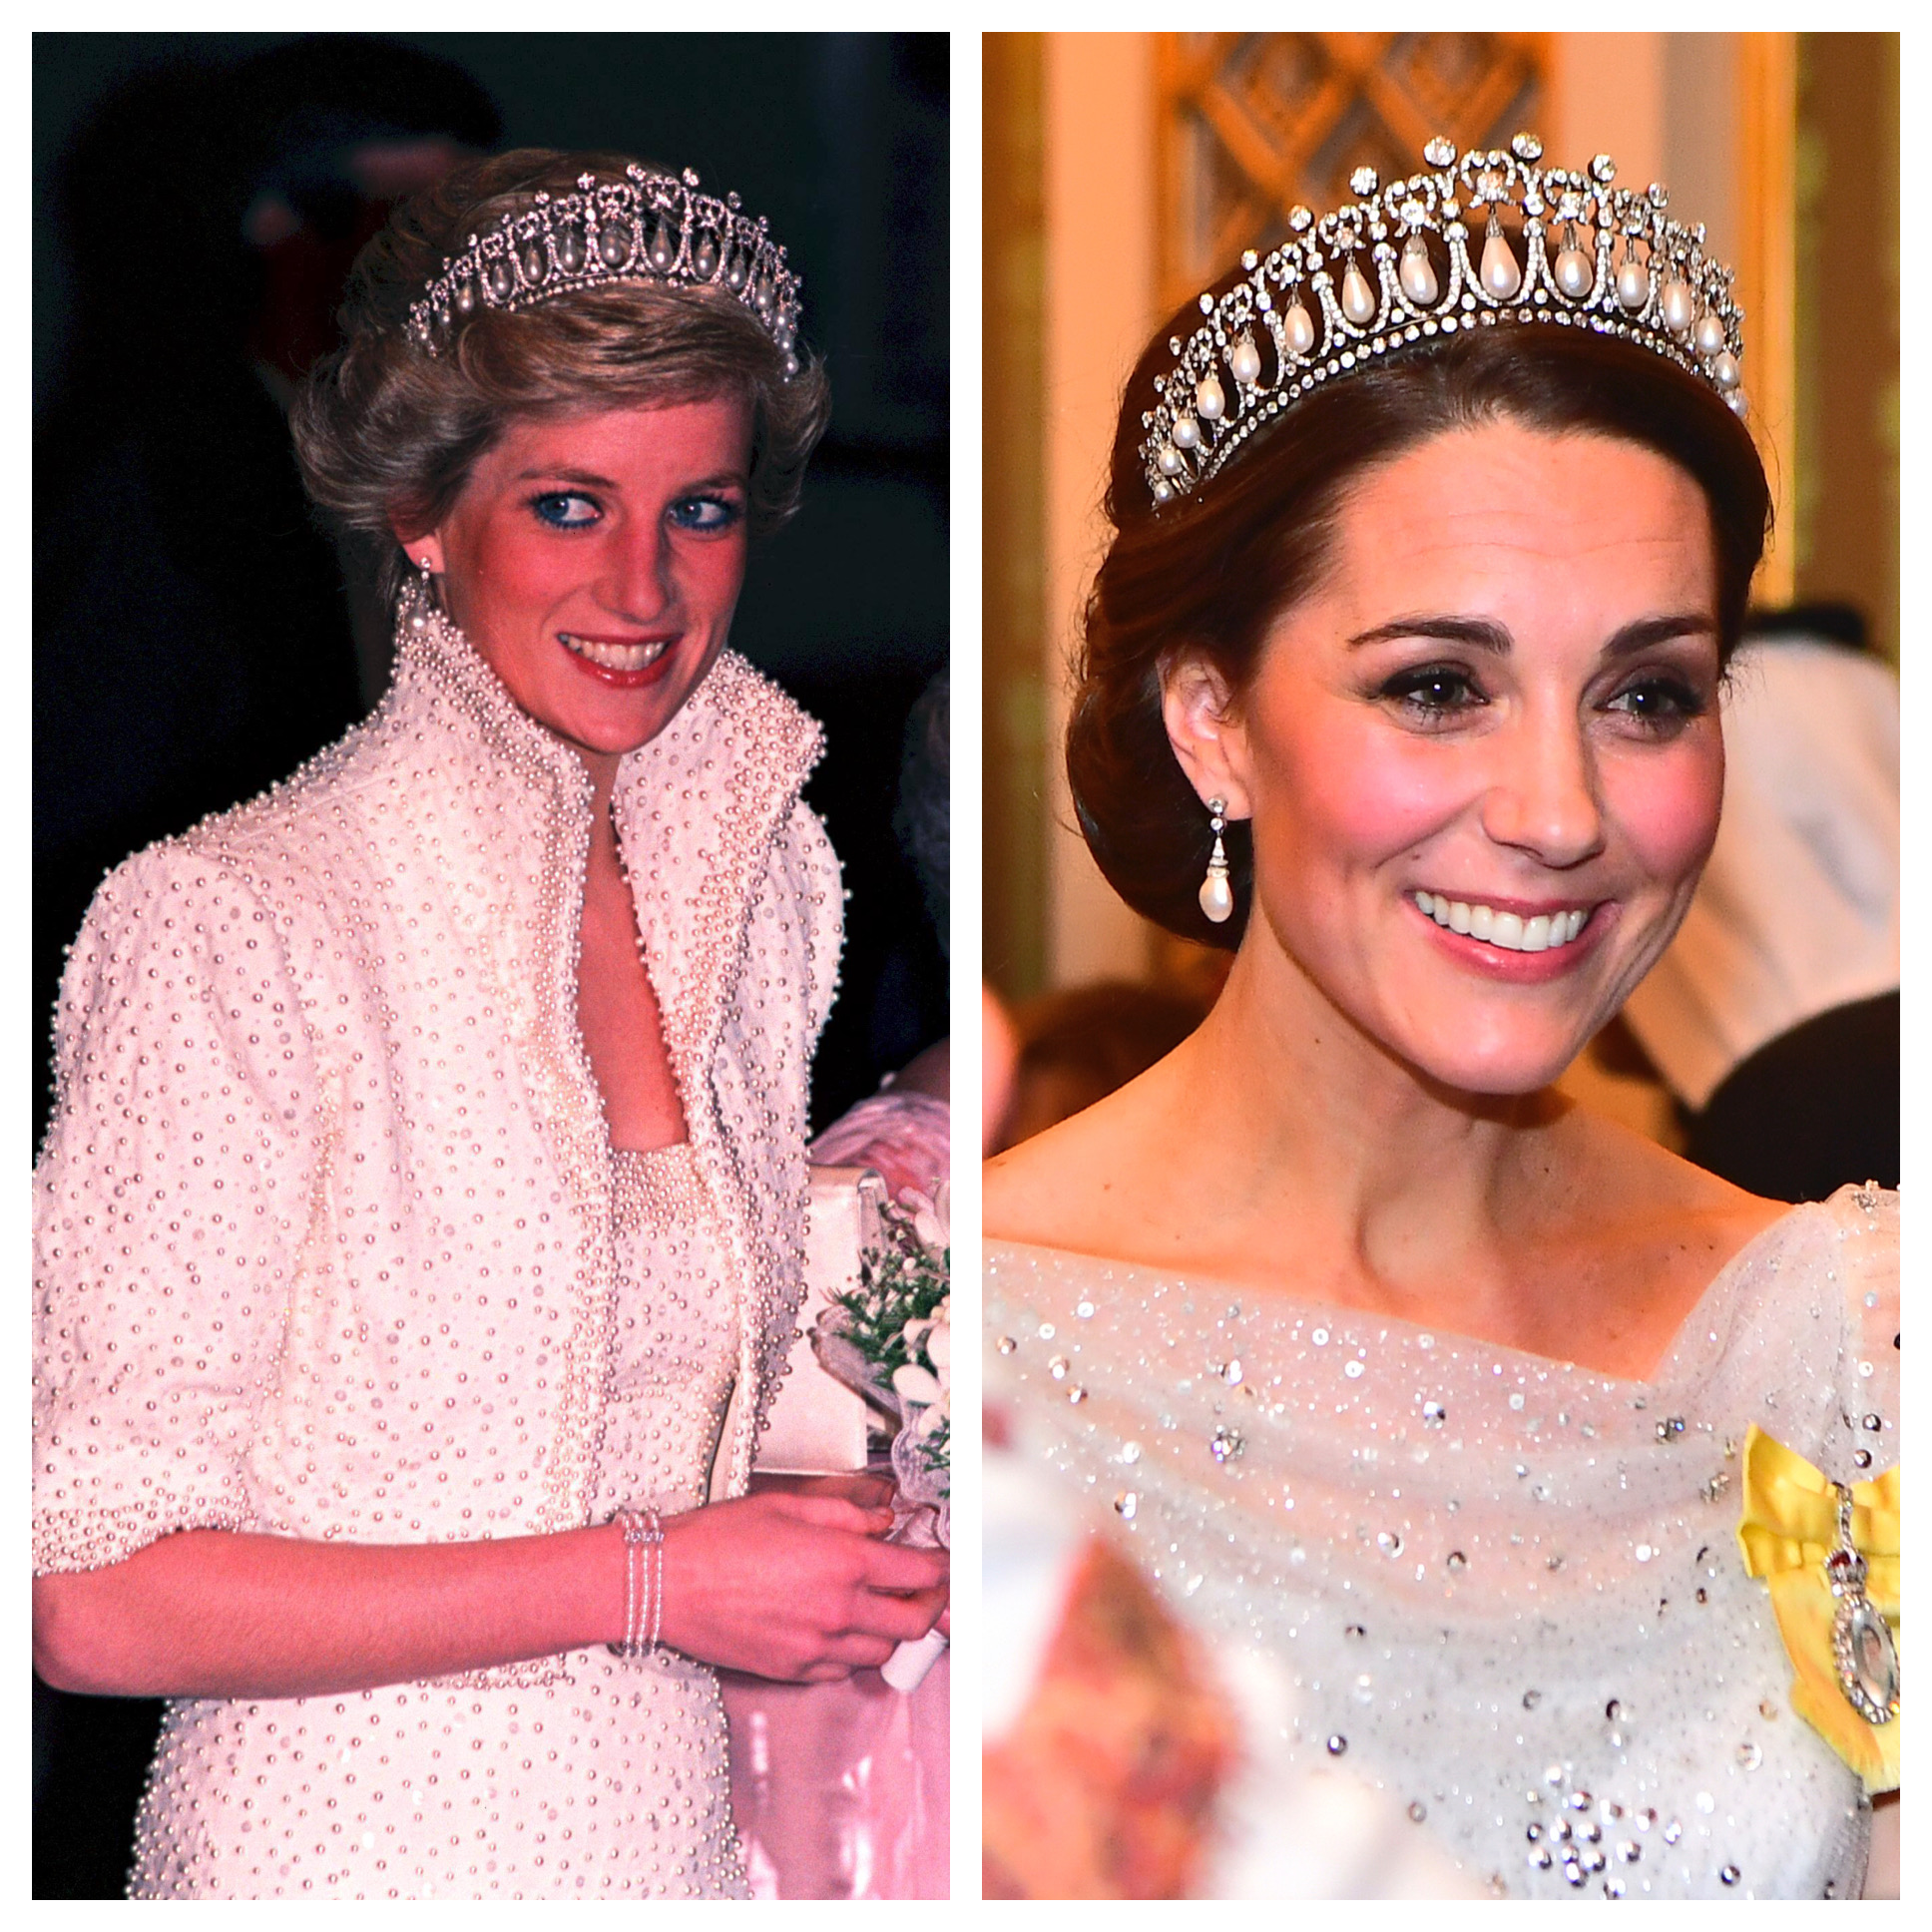 Photos of Kate Middleton Channeling Princess Diana's Style